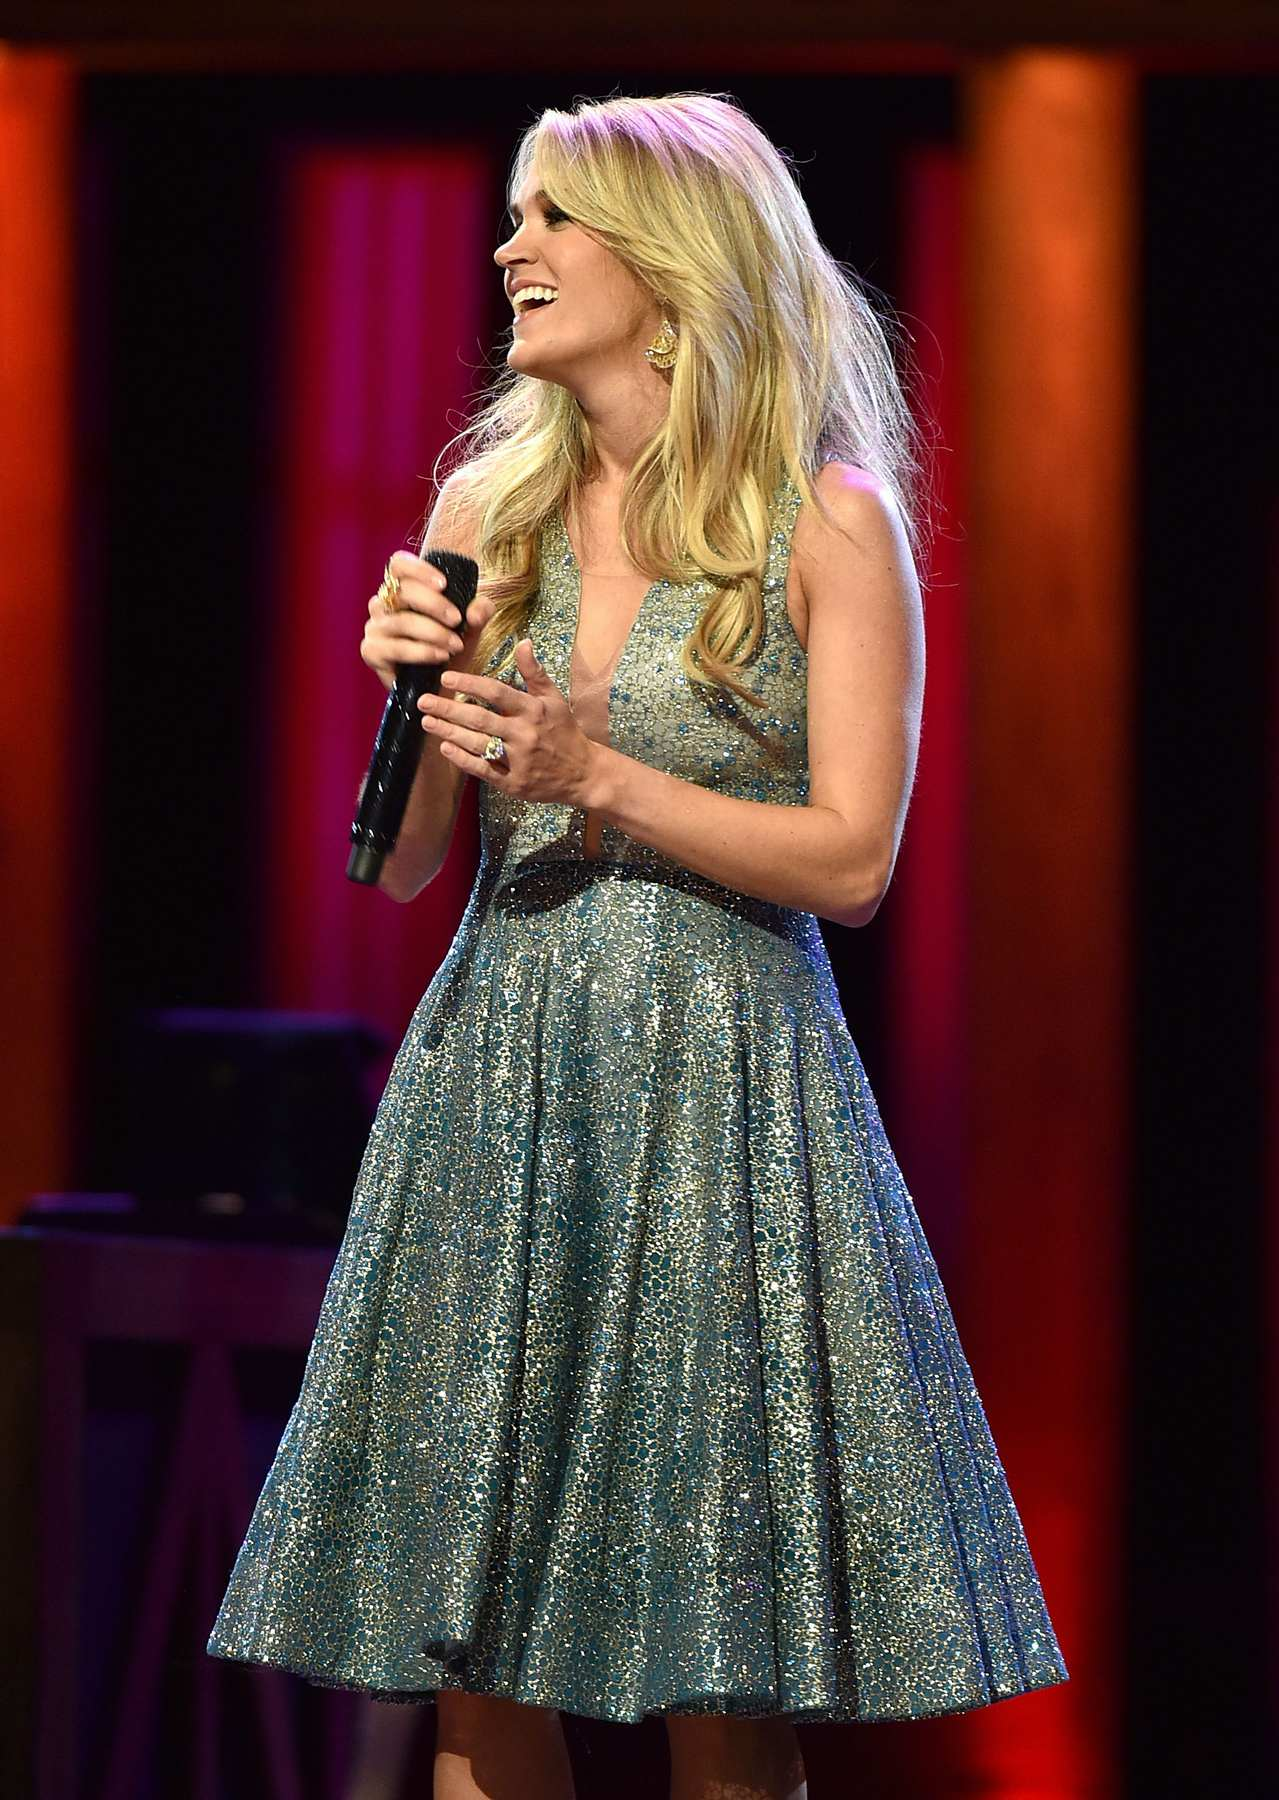 Carrie Underwood Performs At Grand Ole Opry Birthday Bash